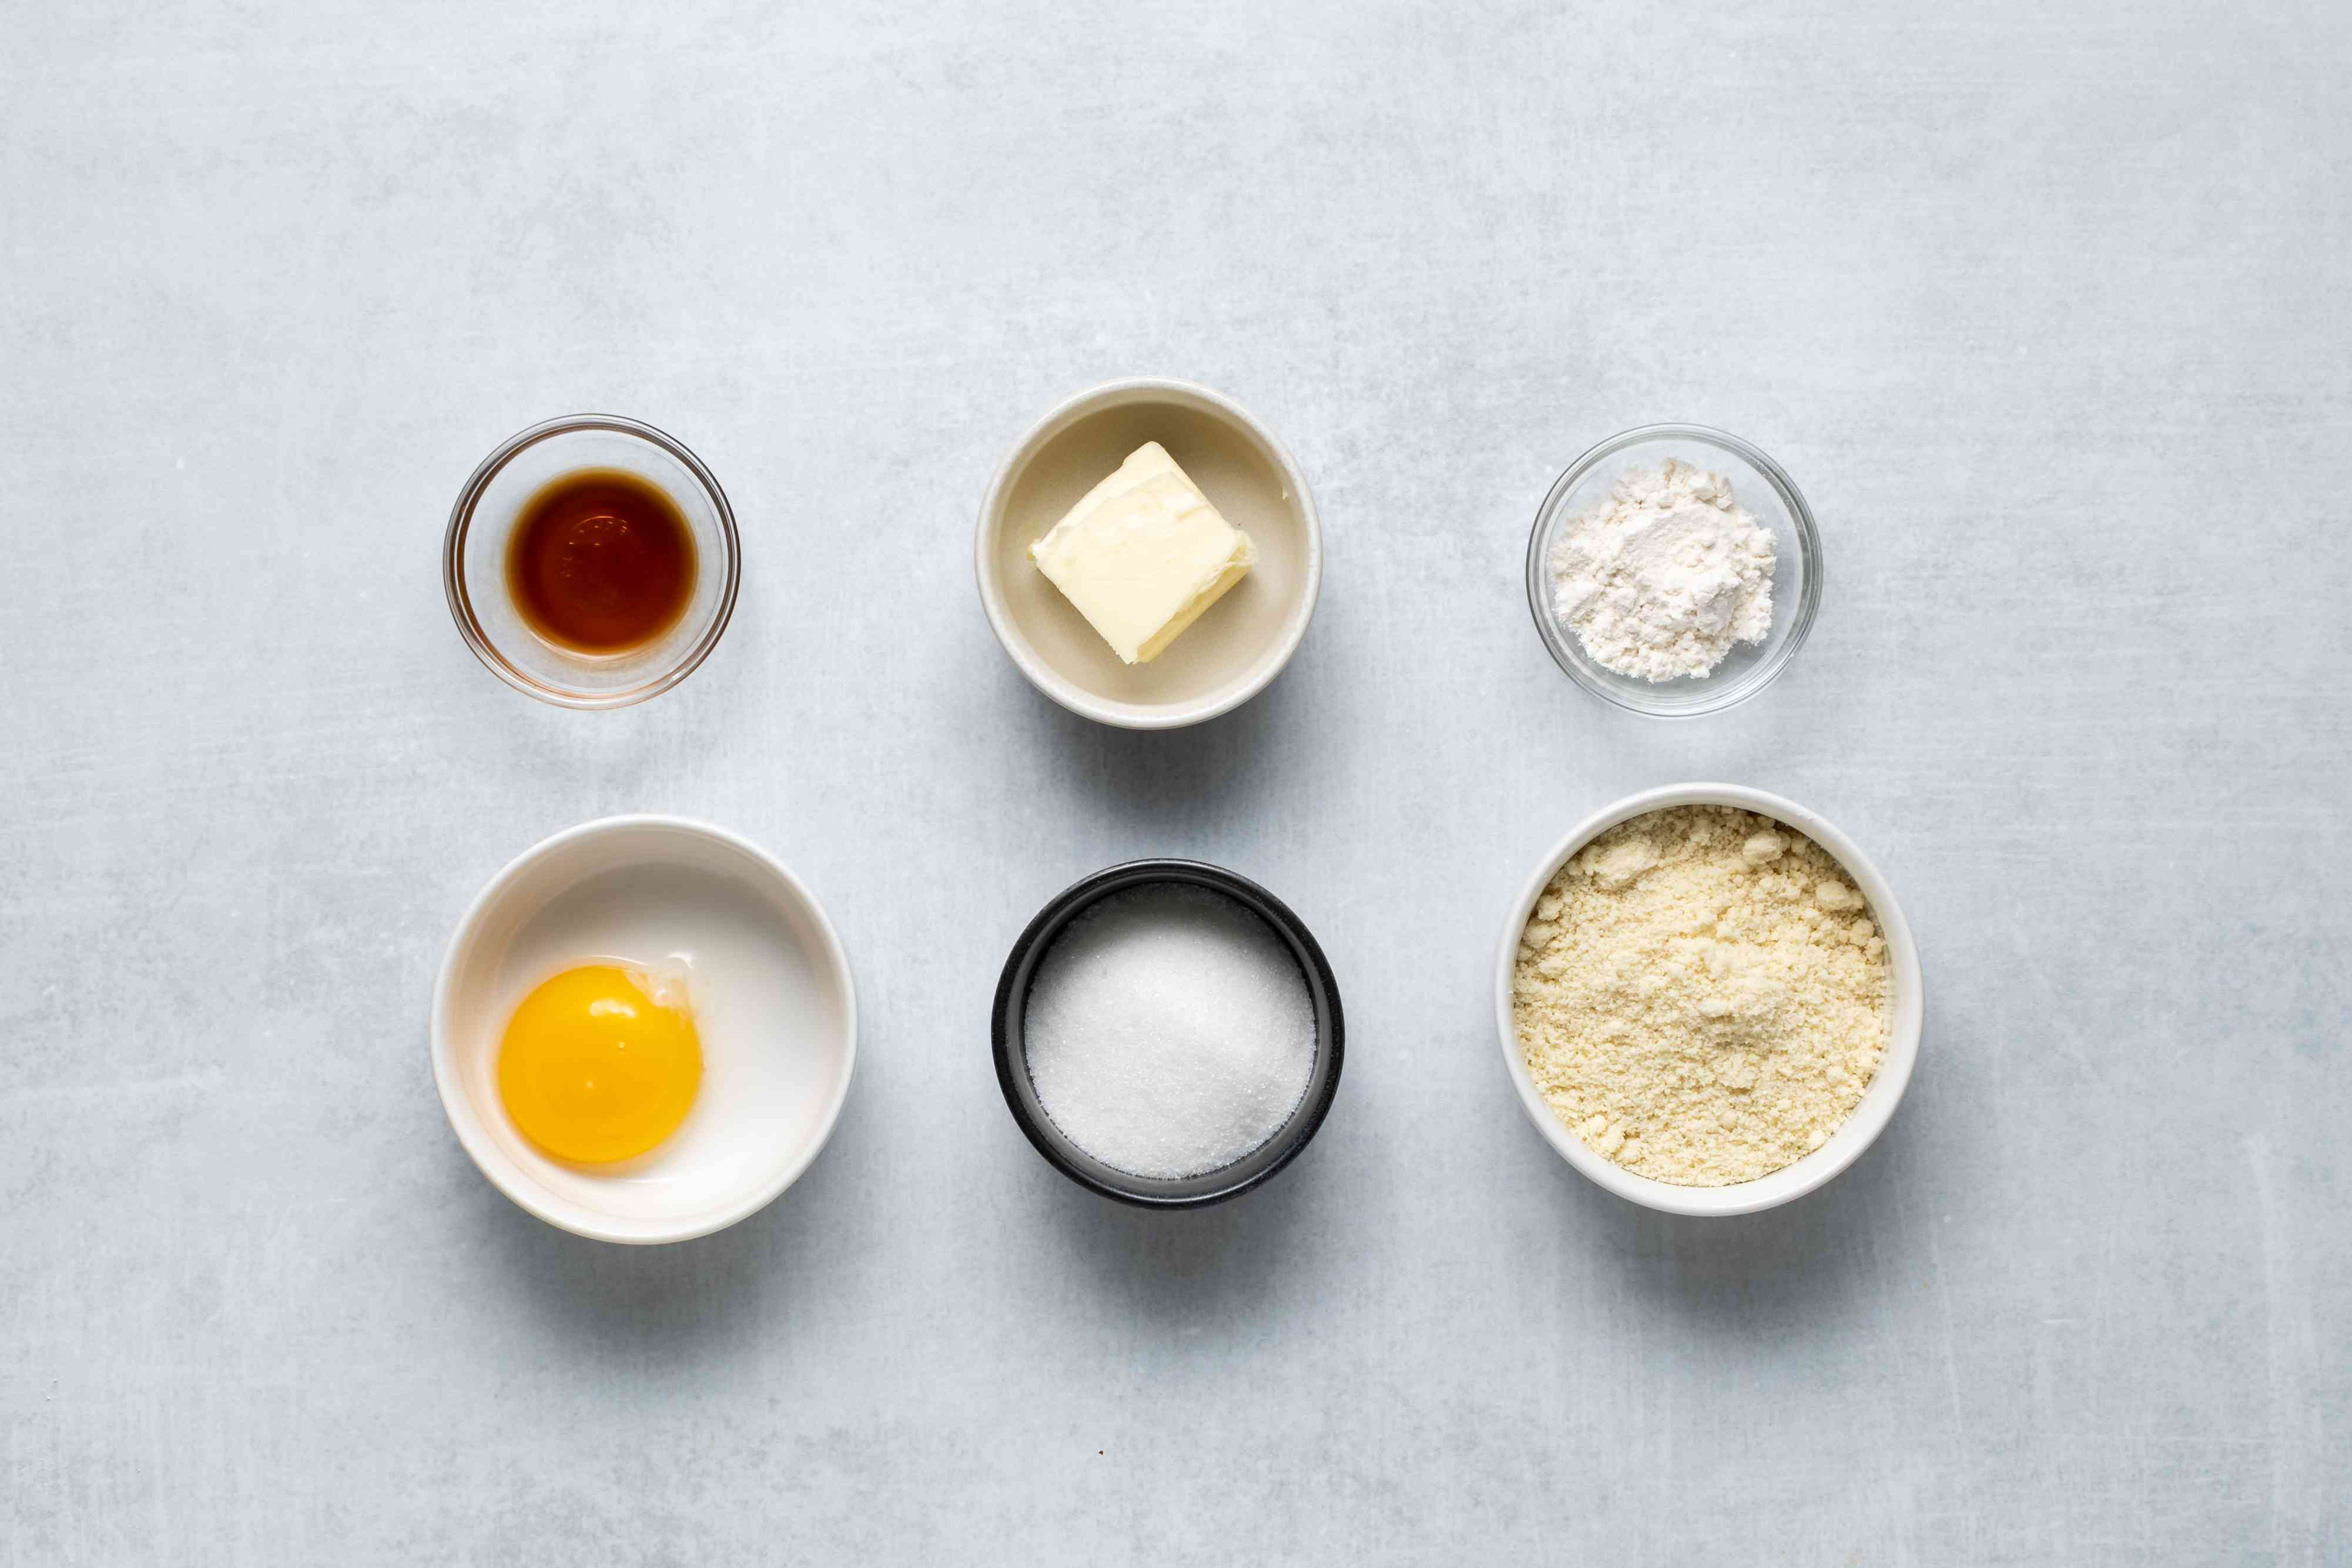 ingredients for the frangipane